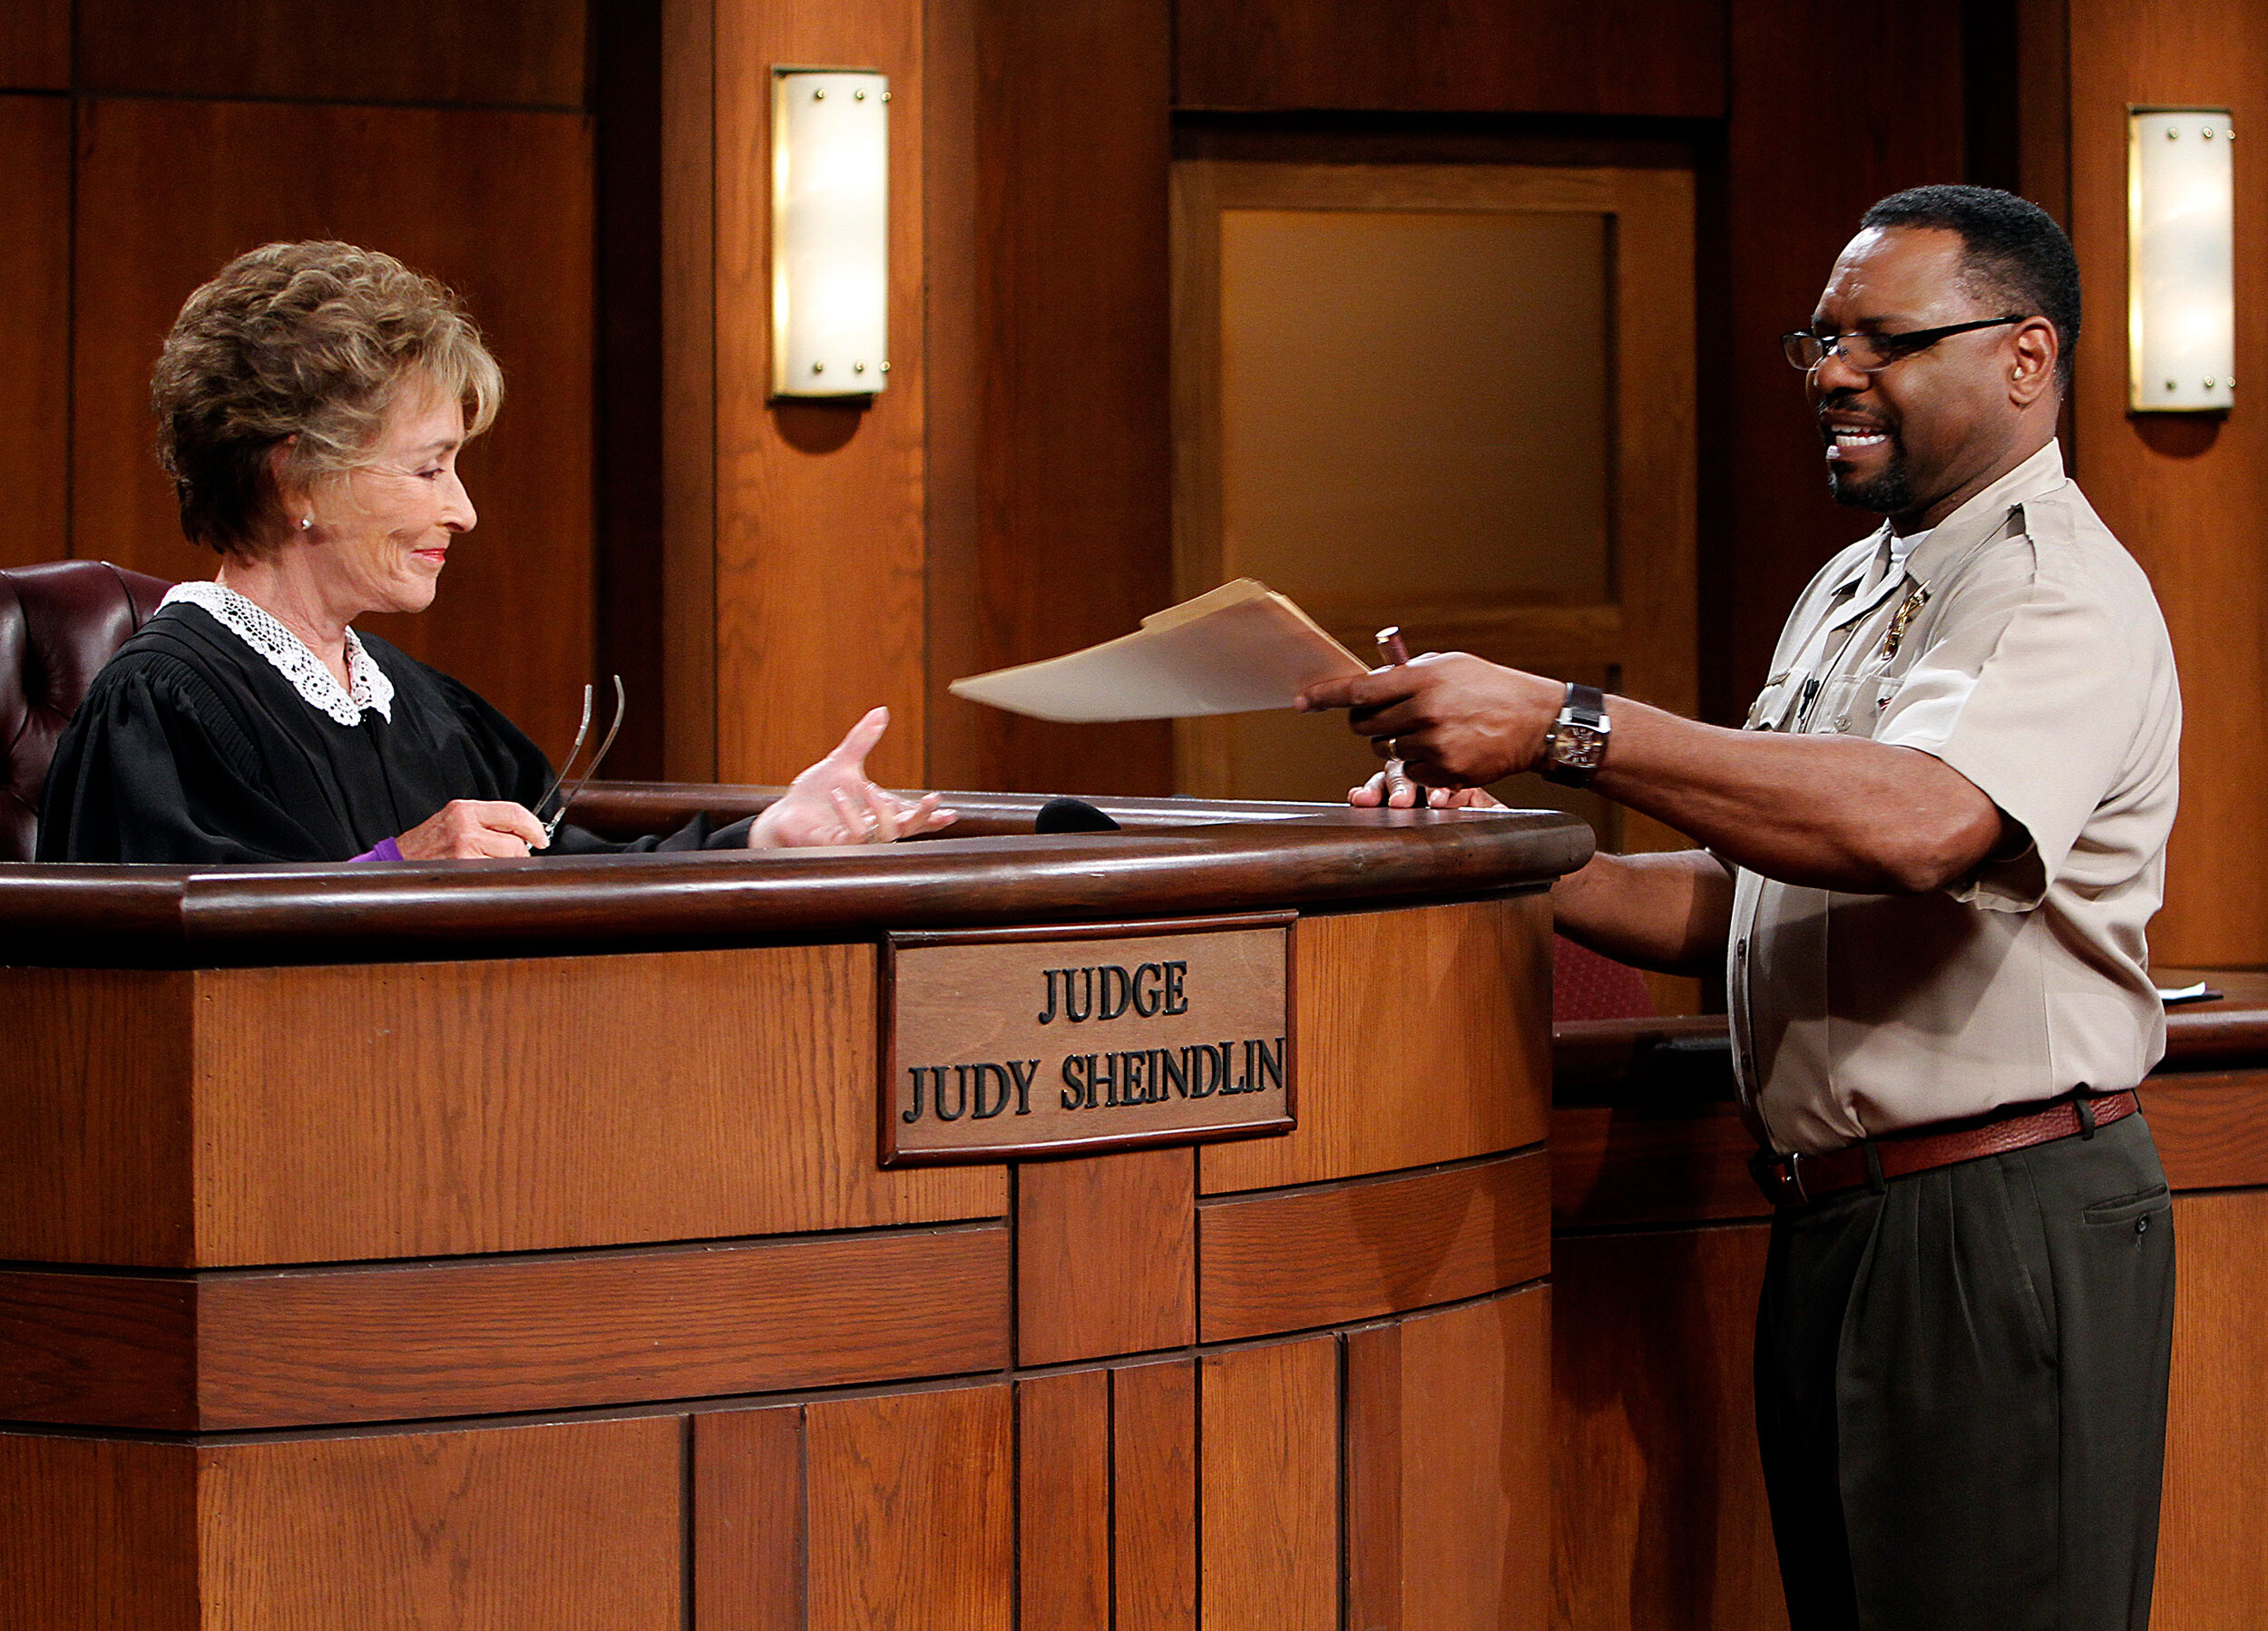 'Judge Judy' bailiff says he wasn't invited to be a part of her new show